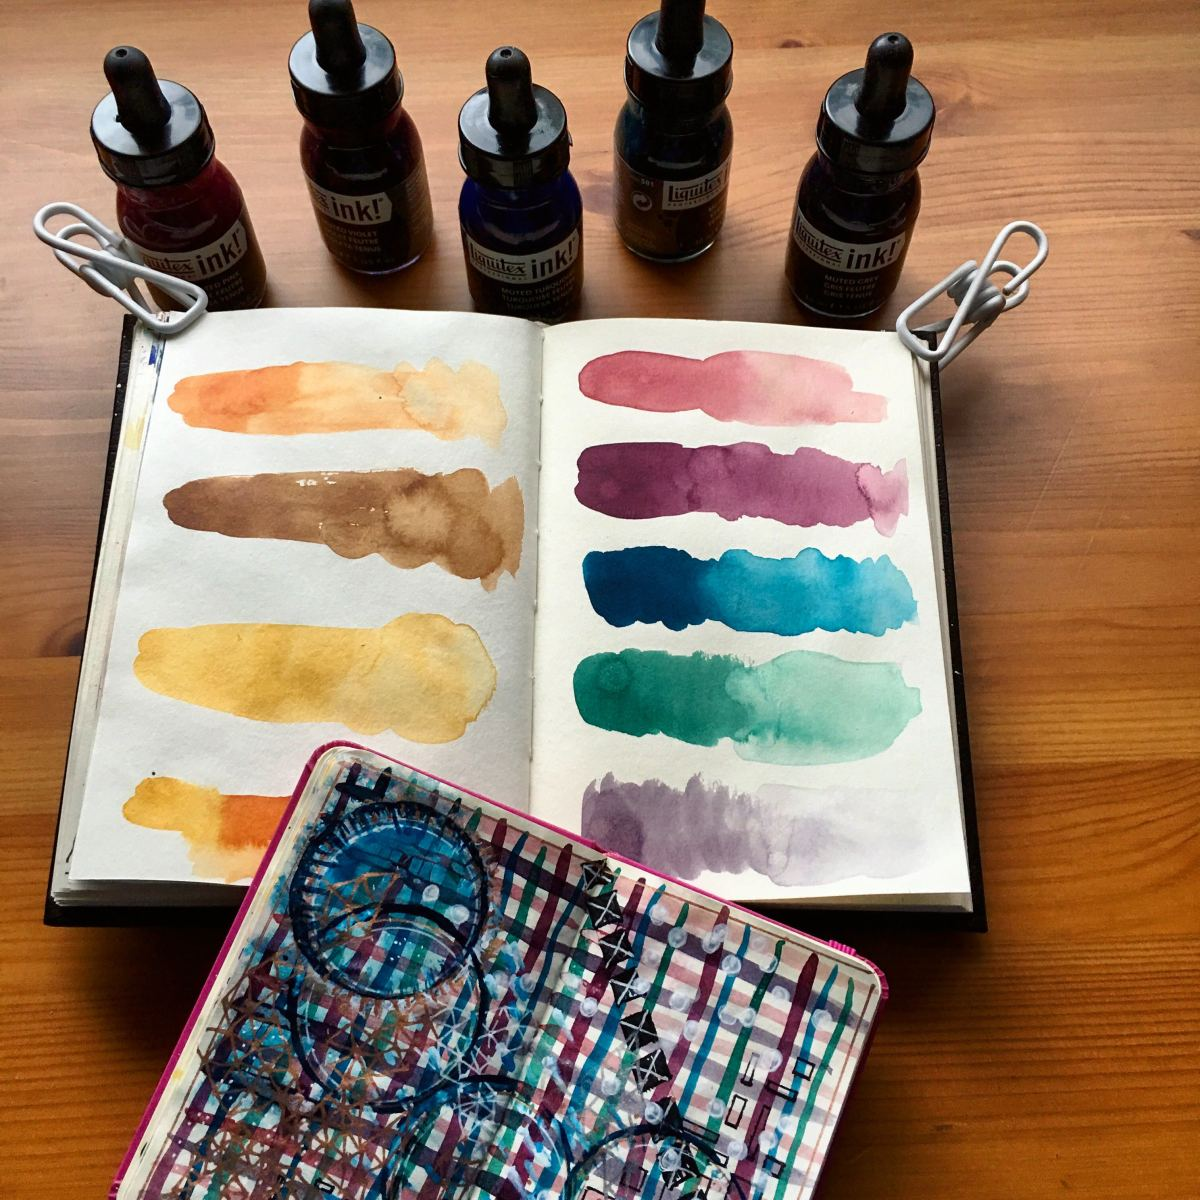 Liquitex Professional Acrylic Ink! Muted Collection and Transparent Set in a Stillman & Birn Gamma Series journal